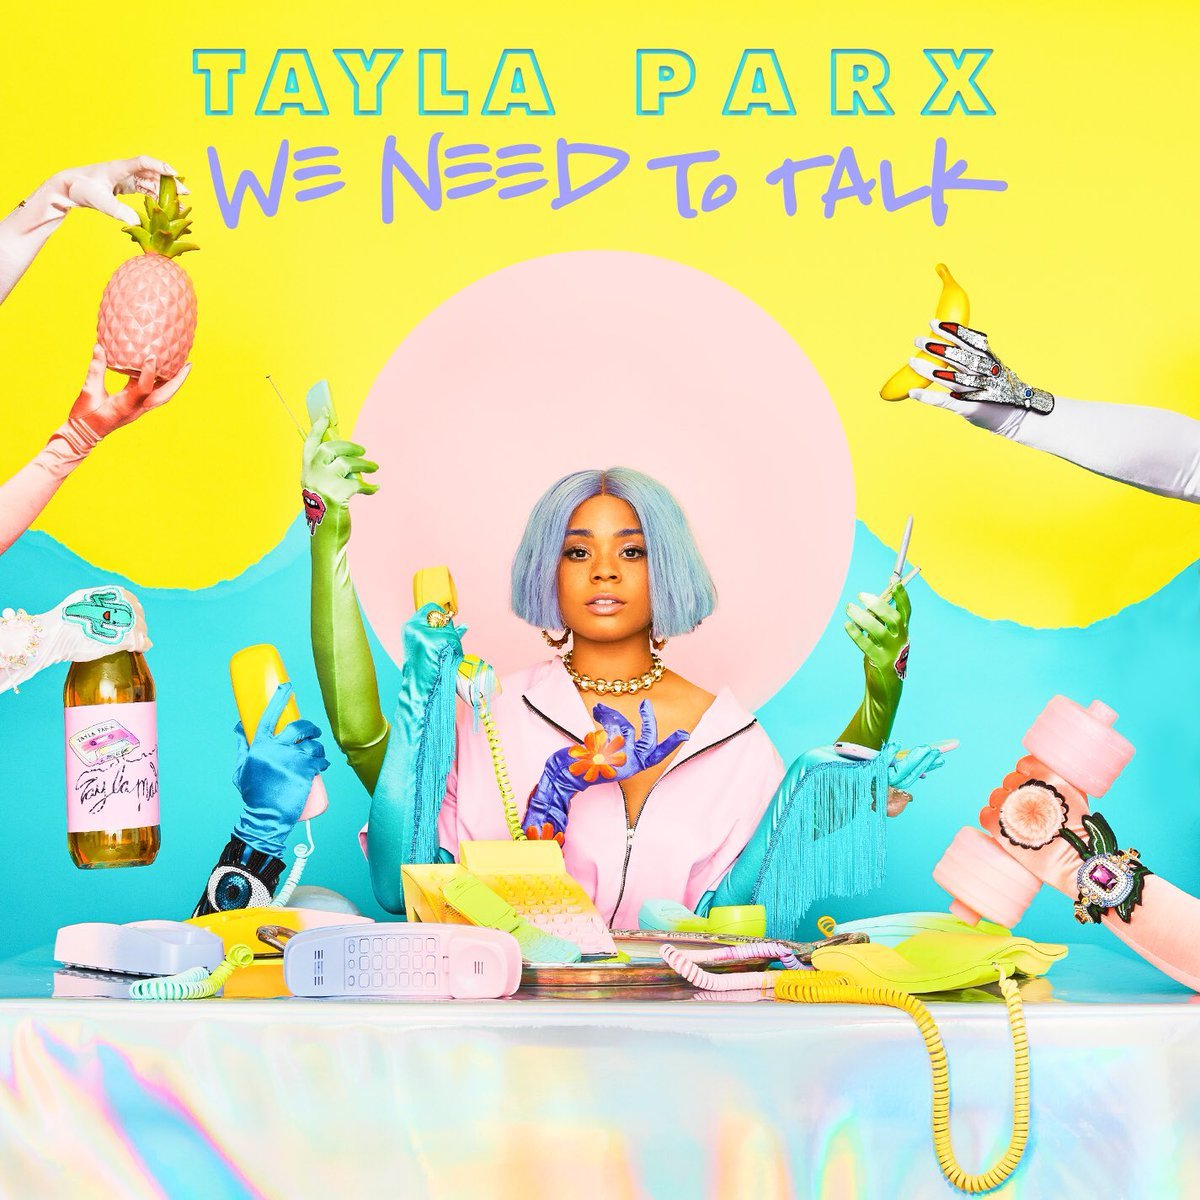 tayla prax we need to talk album cover artwork stream